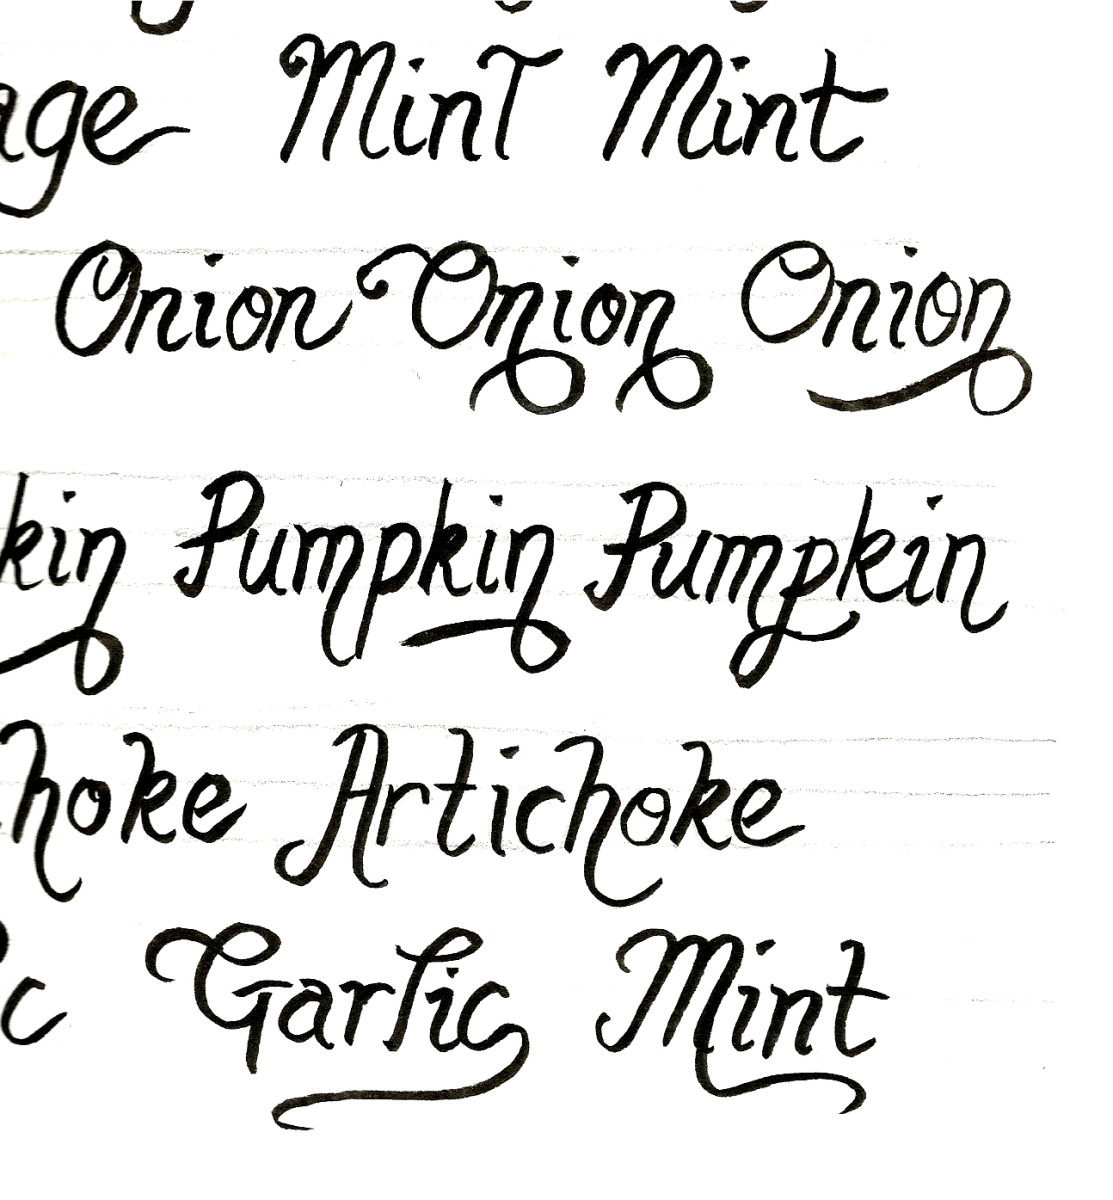 Practice writing the names of your plants on paper first. It will give you confidence, and it will help you gauge how much room you'll need to fit everything onto your rock.